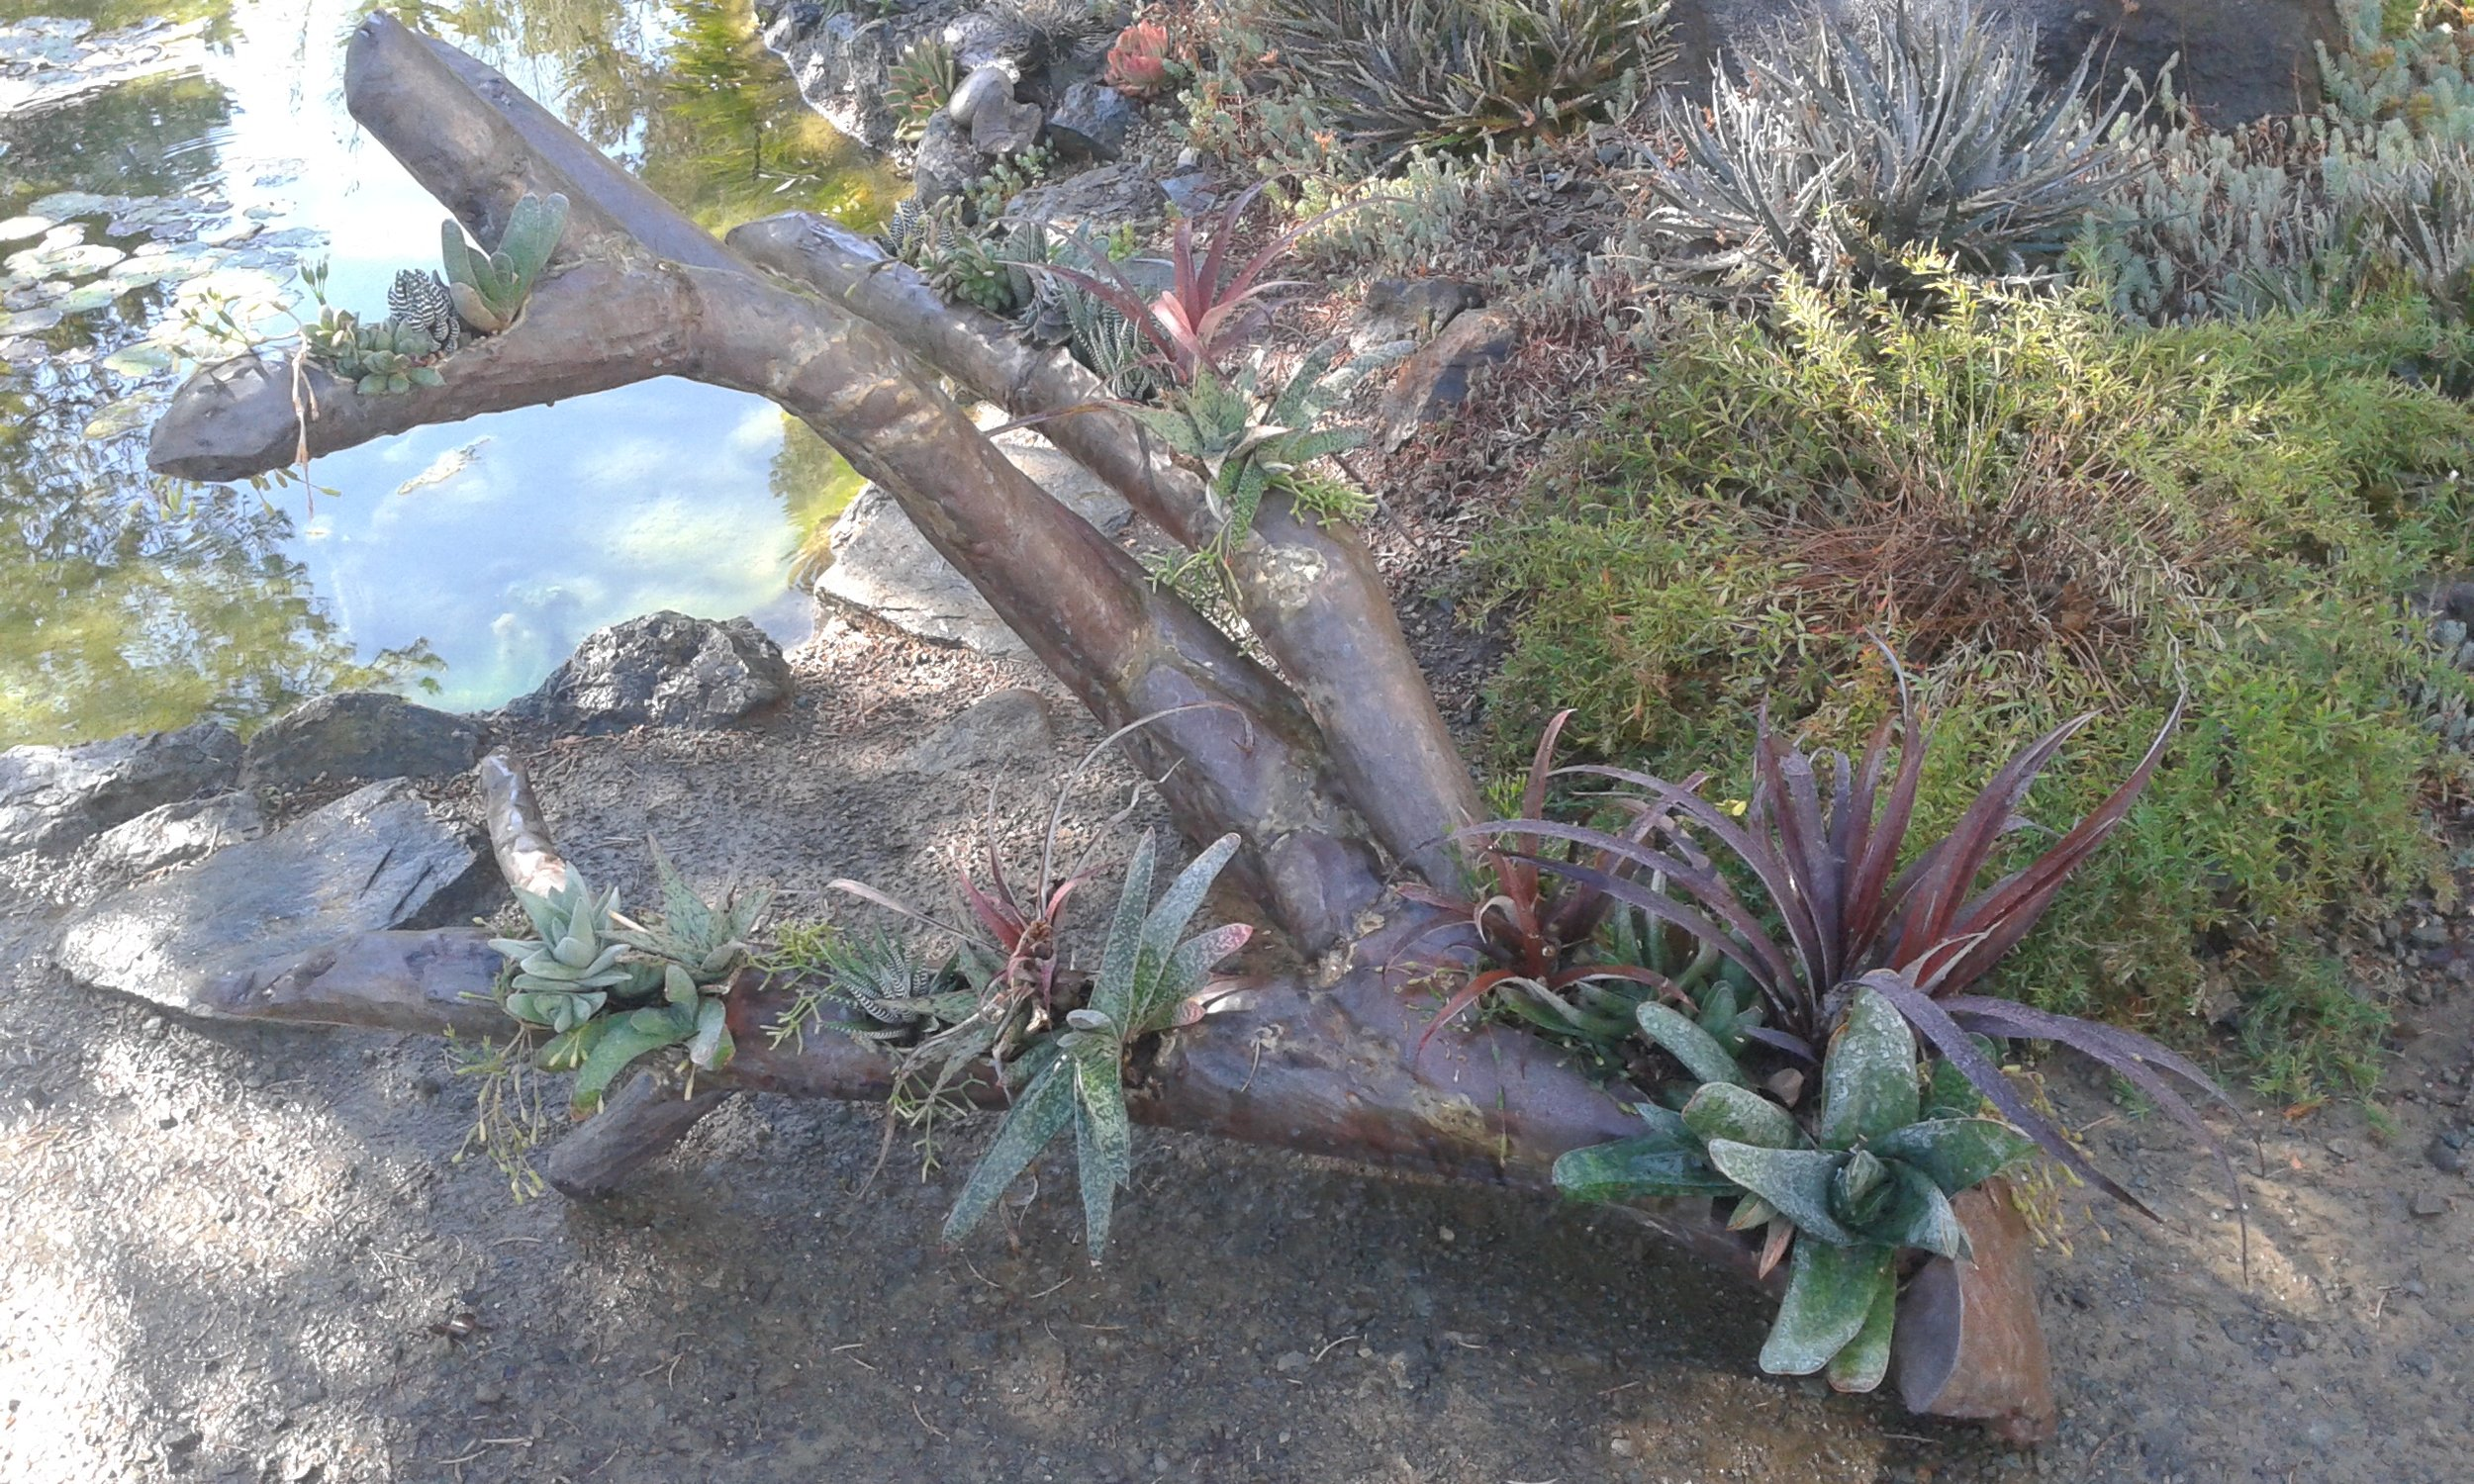 This copper multi-branched tree limb sculpture illustrates design elements such as repetition by repeating the colors of the metal sculpture with the plants. The  Rhipsalis  repeats the brass soldering, the  Cryptbergia  'Red Burst' repeats the warm reddish tones of the copper as do the red tips of the  Gasterias . Repetition is used also by installing the same varieties of plants in more than one cavity. A second design element used was scale by the placing larger plants in the larger areas of the sculpture and smaller plants in the smaller areas. Notice the larger and visually heavier plants at the base of the sculpture at the bottom right serving to anchor the piece.